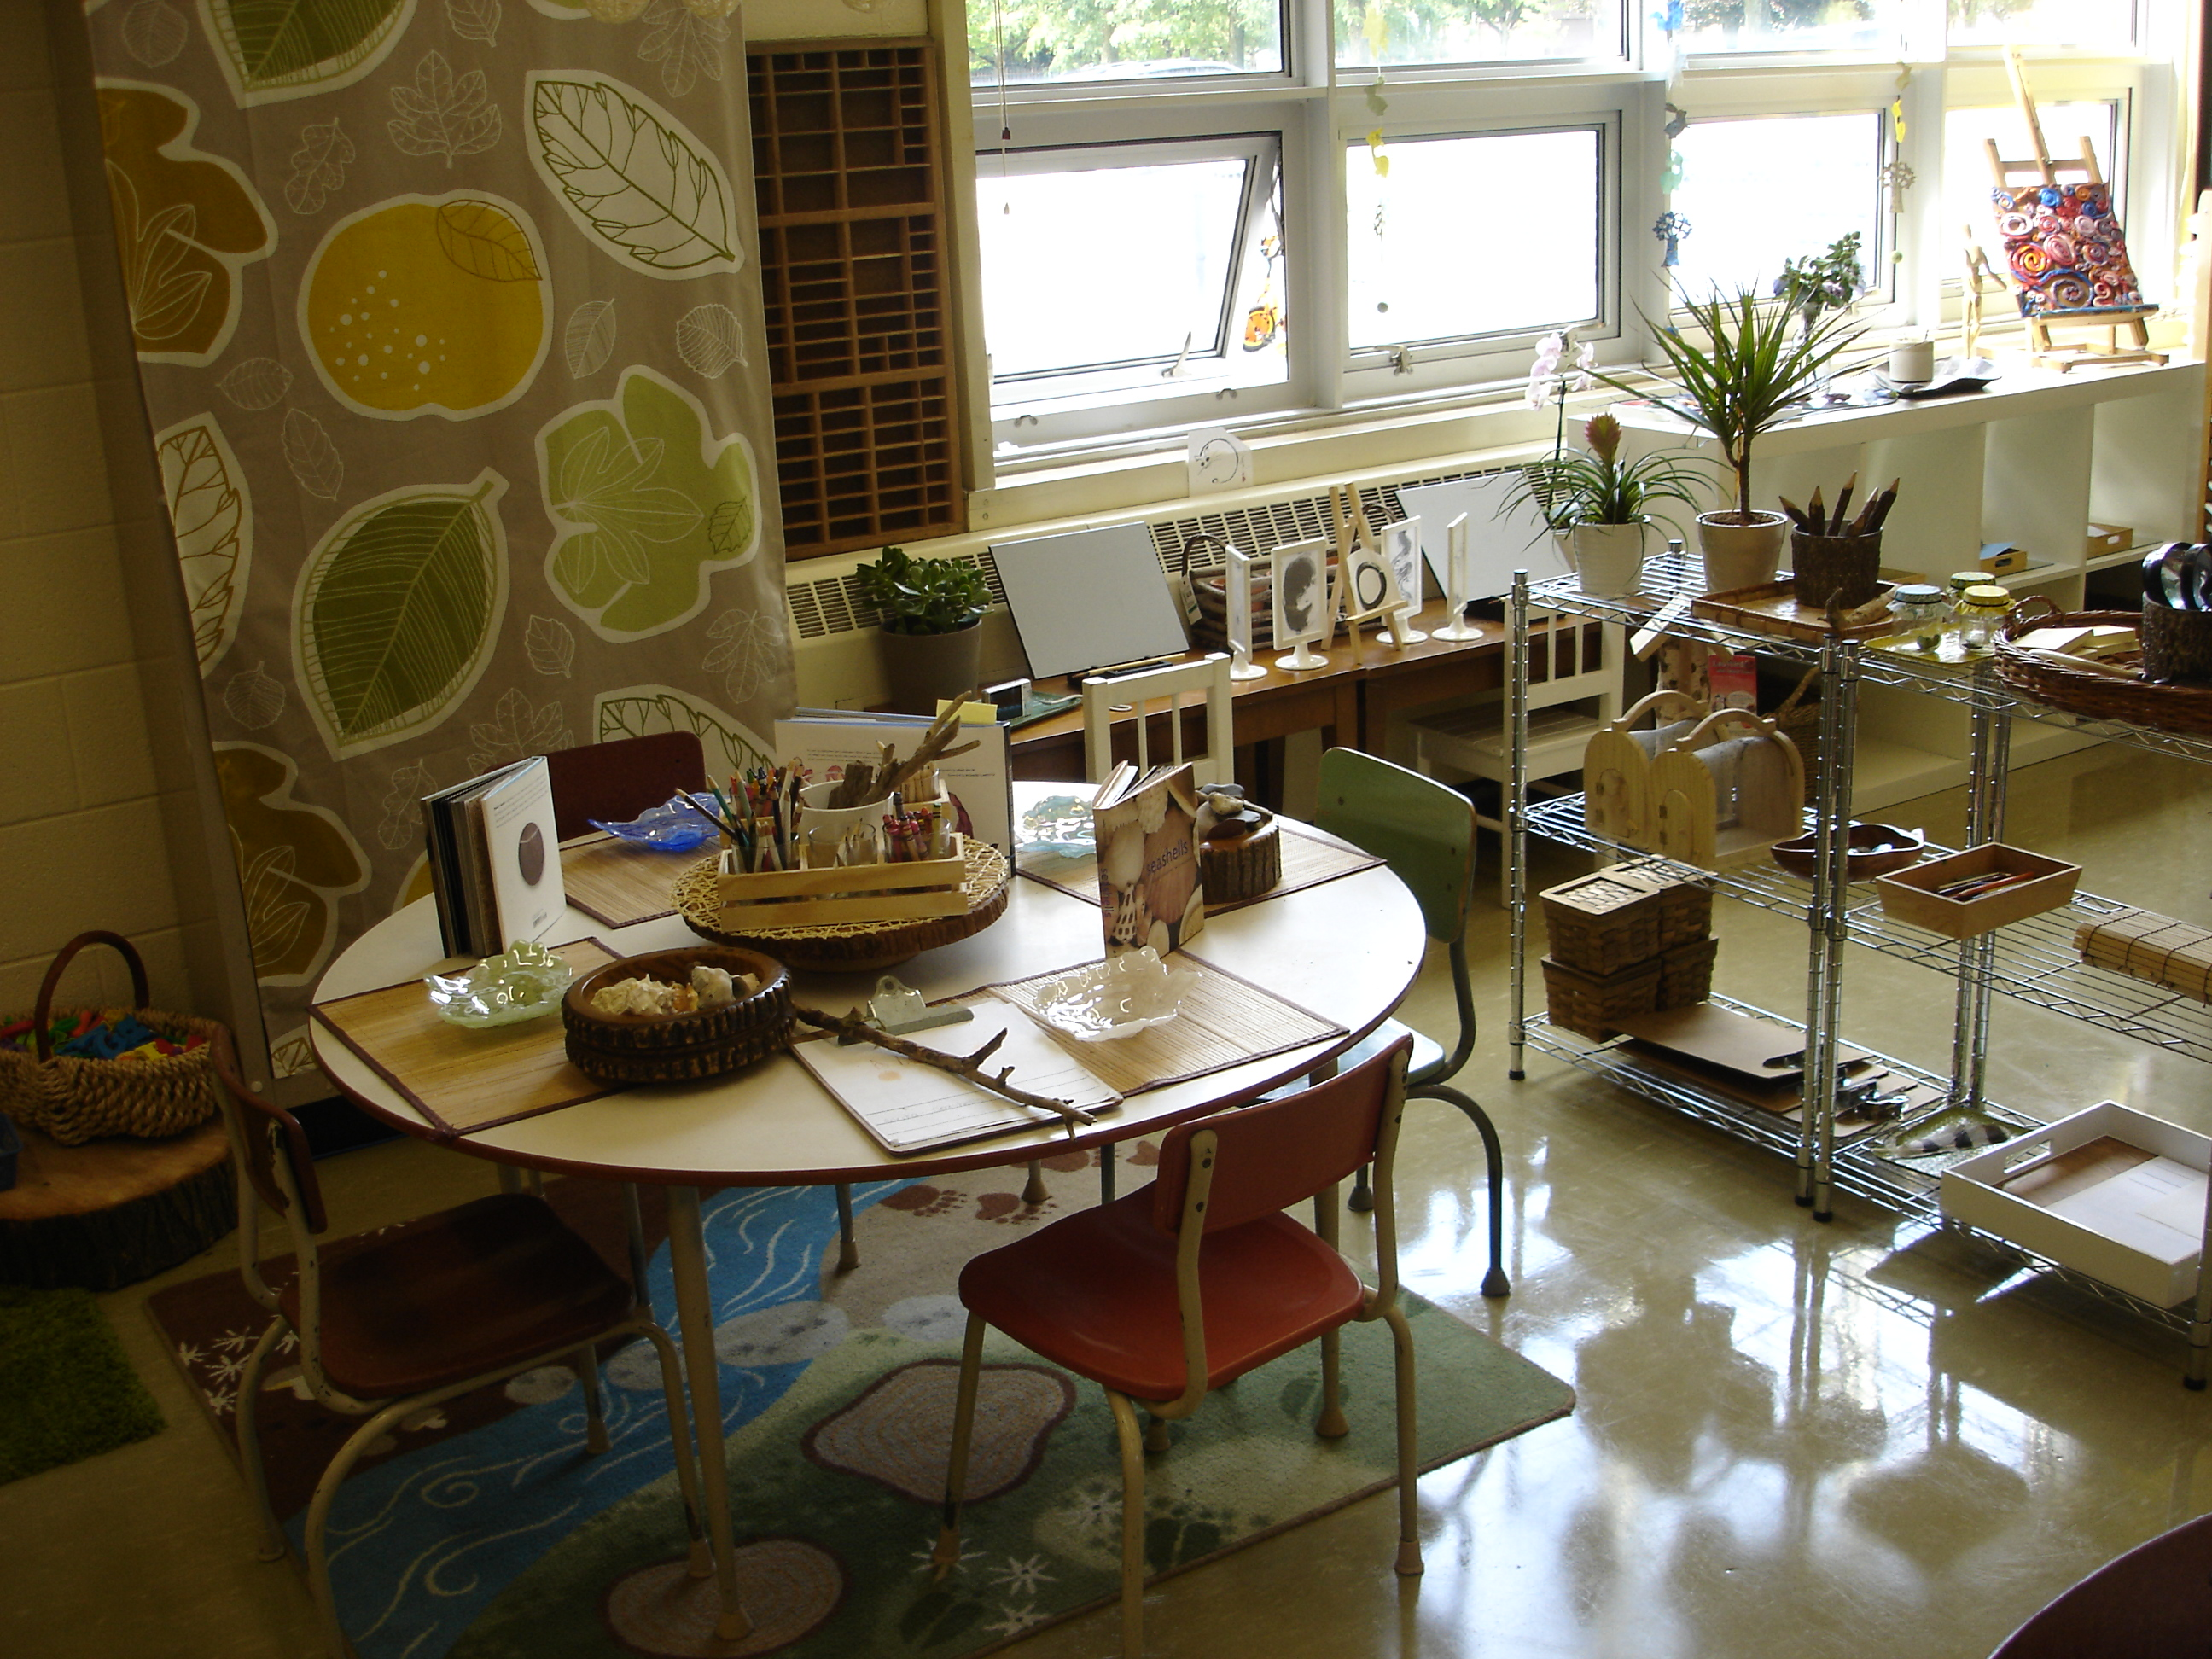 Natural Classroom Design ~ Reggio inspired classroom setup the curious kindergarten